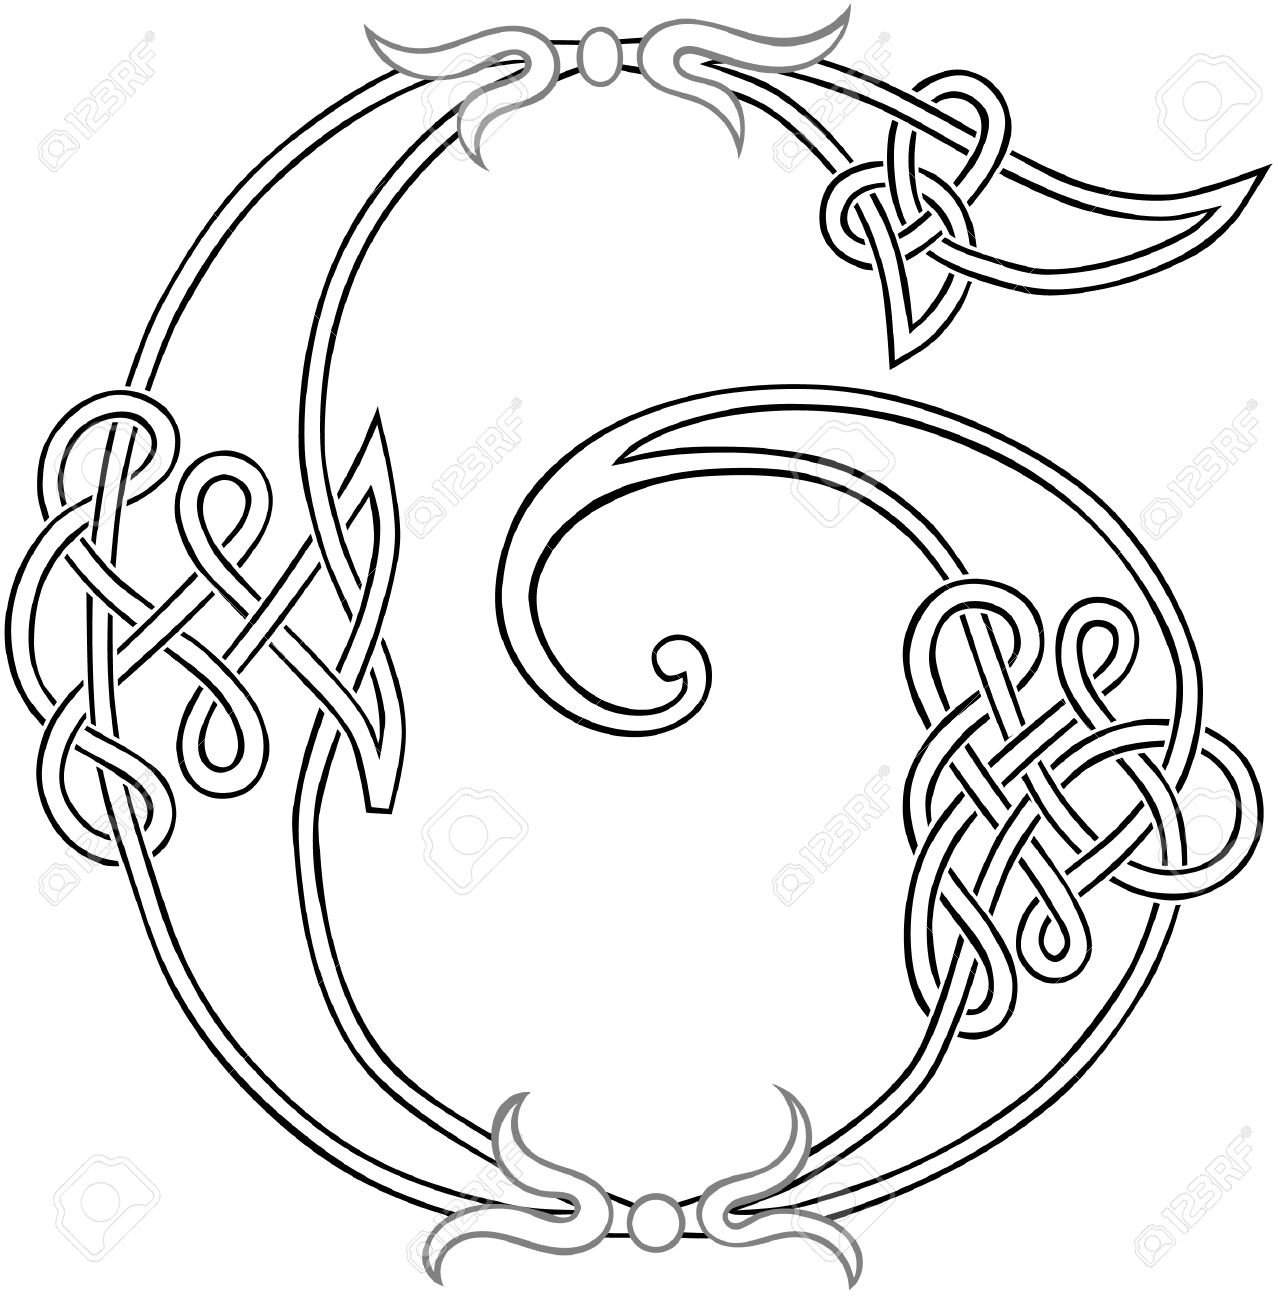 A Celtic Knot-work Capital Letter G Stylized Outline Royalty Free ...